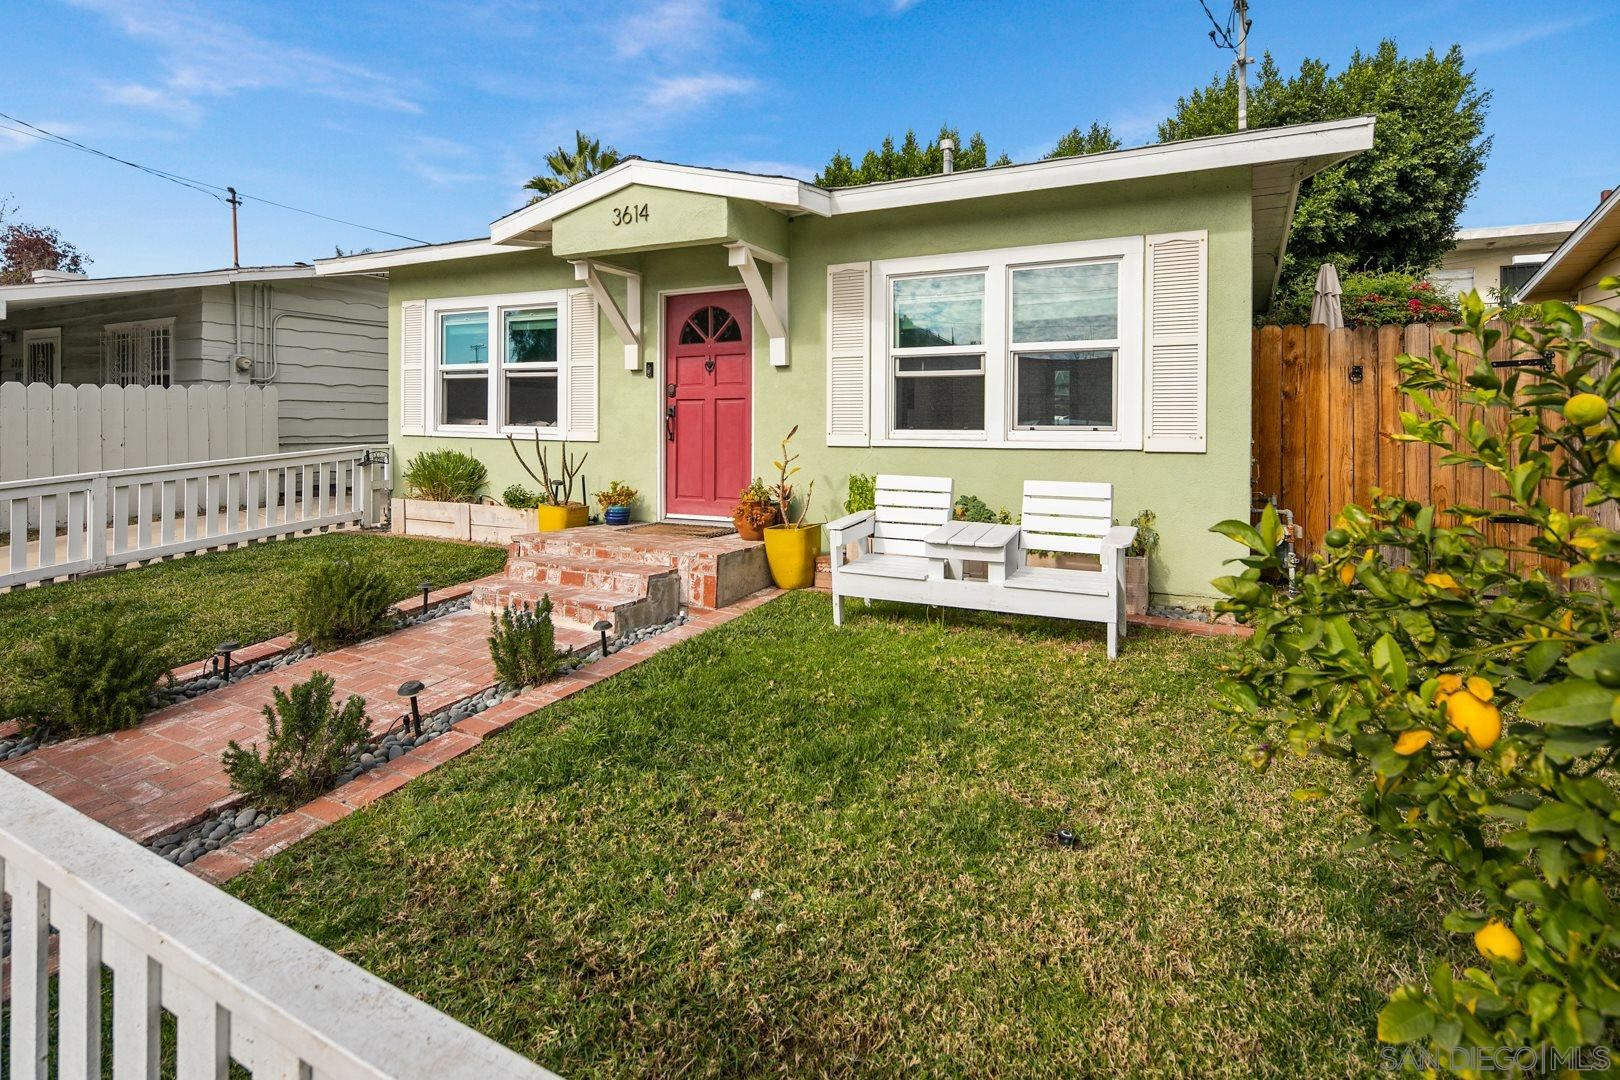 Photo for 3614 Monroe Ave, San Diego, CA 92116 (MLS # 210001611)